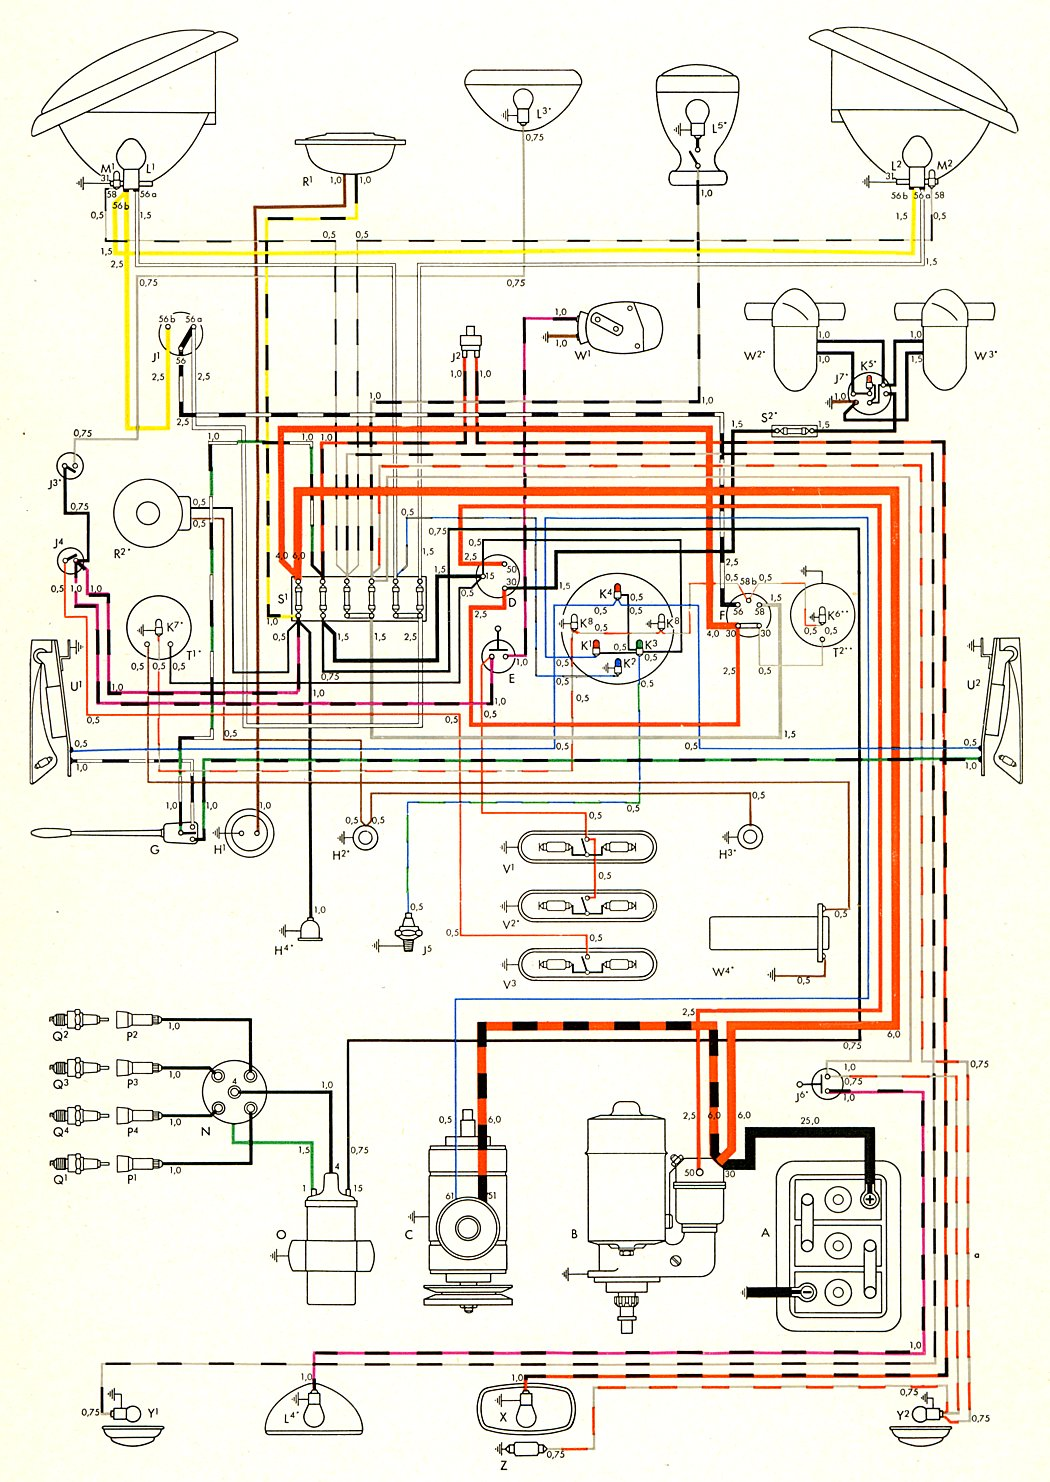 Thomas Bus Electrical Diagrams - Chevy 3 1 Engine Wire Diagram -  cts-lsa.1990-300zx.pistadelsole.it | Bus Electrical Wiring Diagrams |  | Pista del Sole